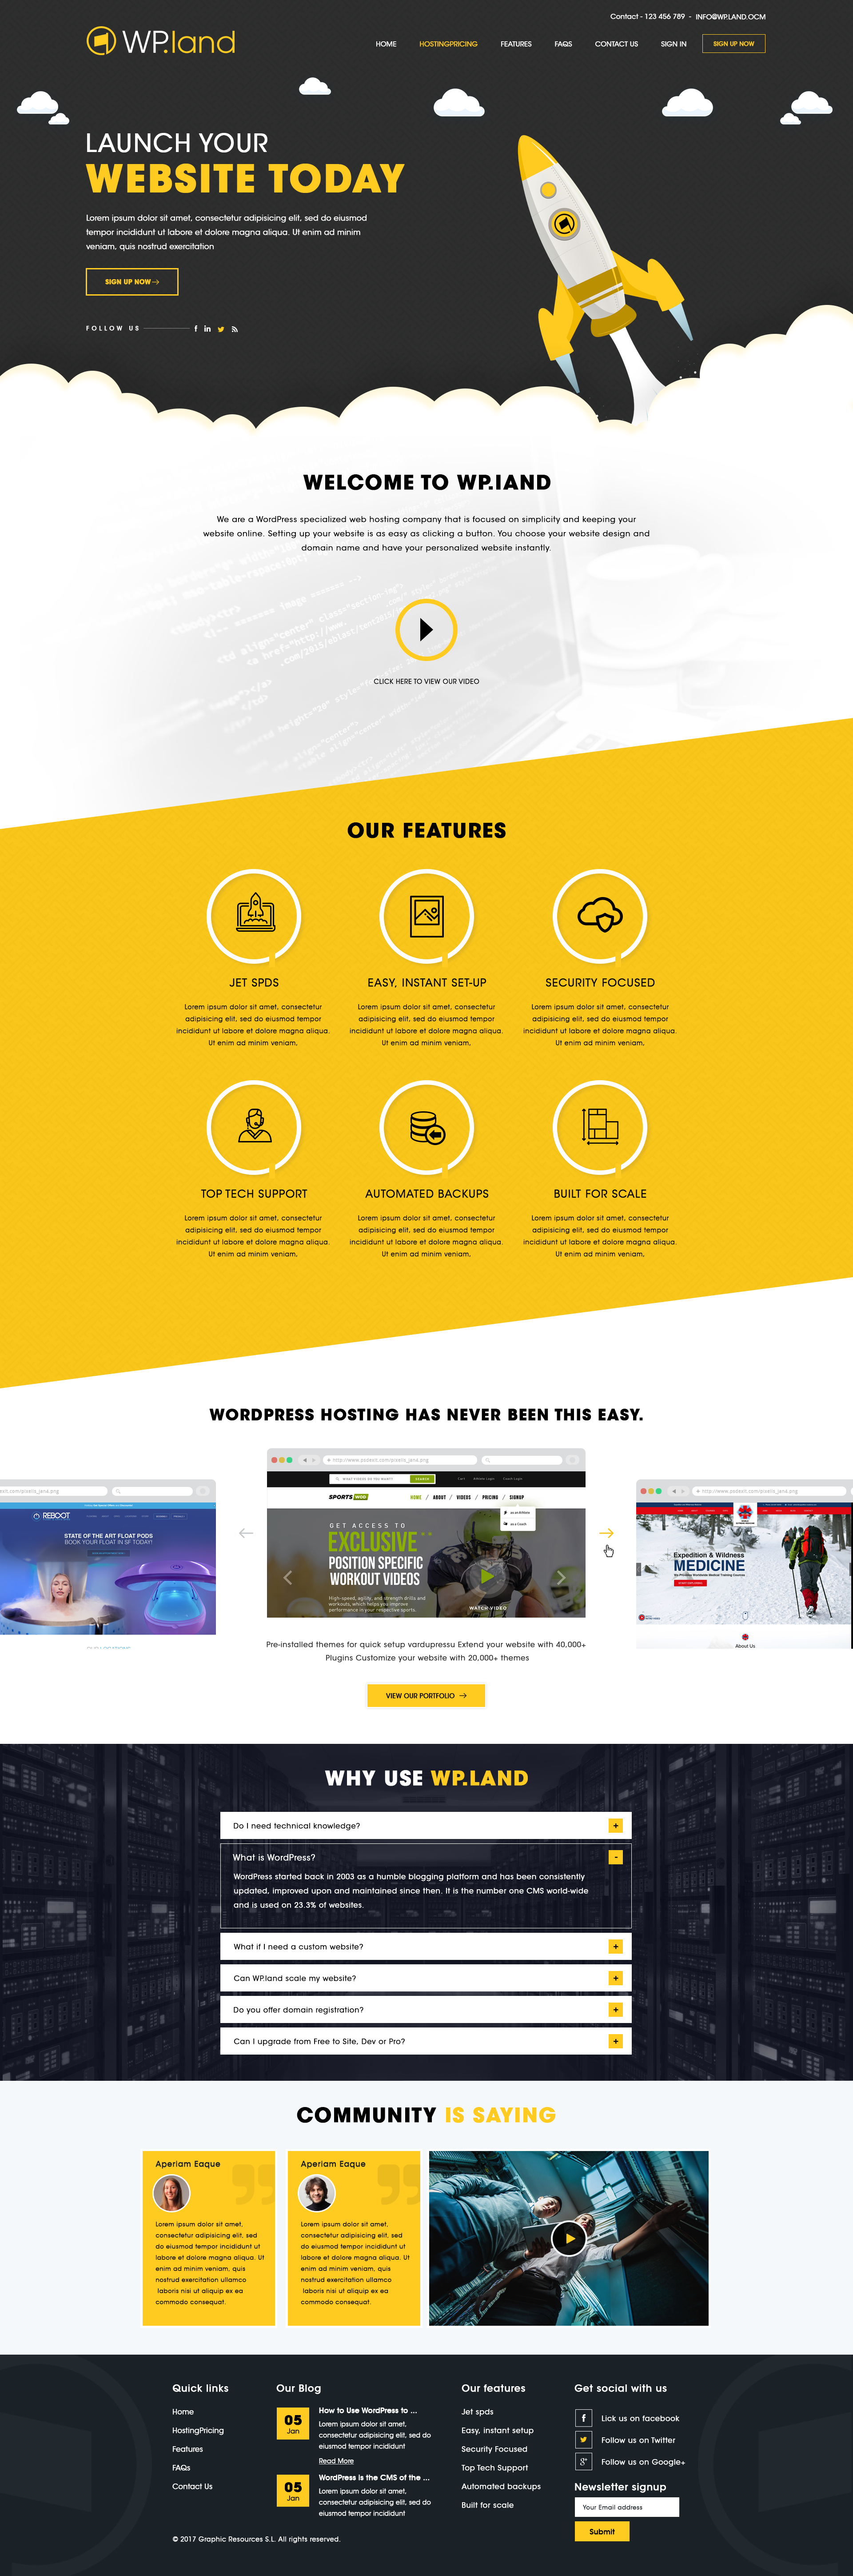 Redesign a Home Page for our WordPress Hosting Platform